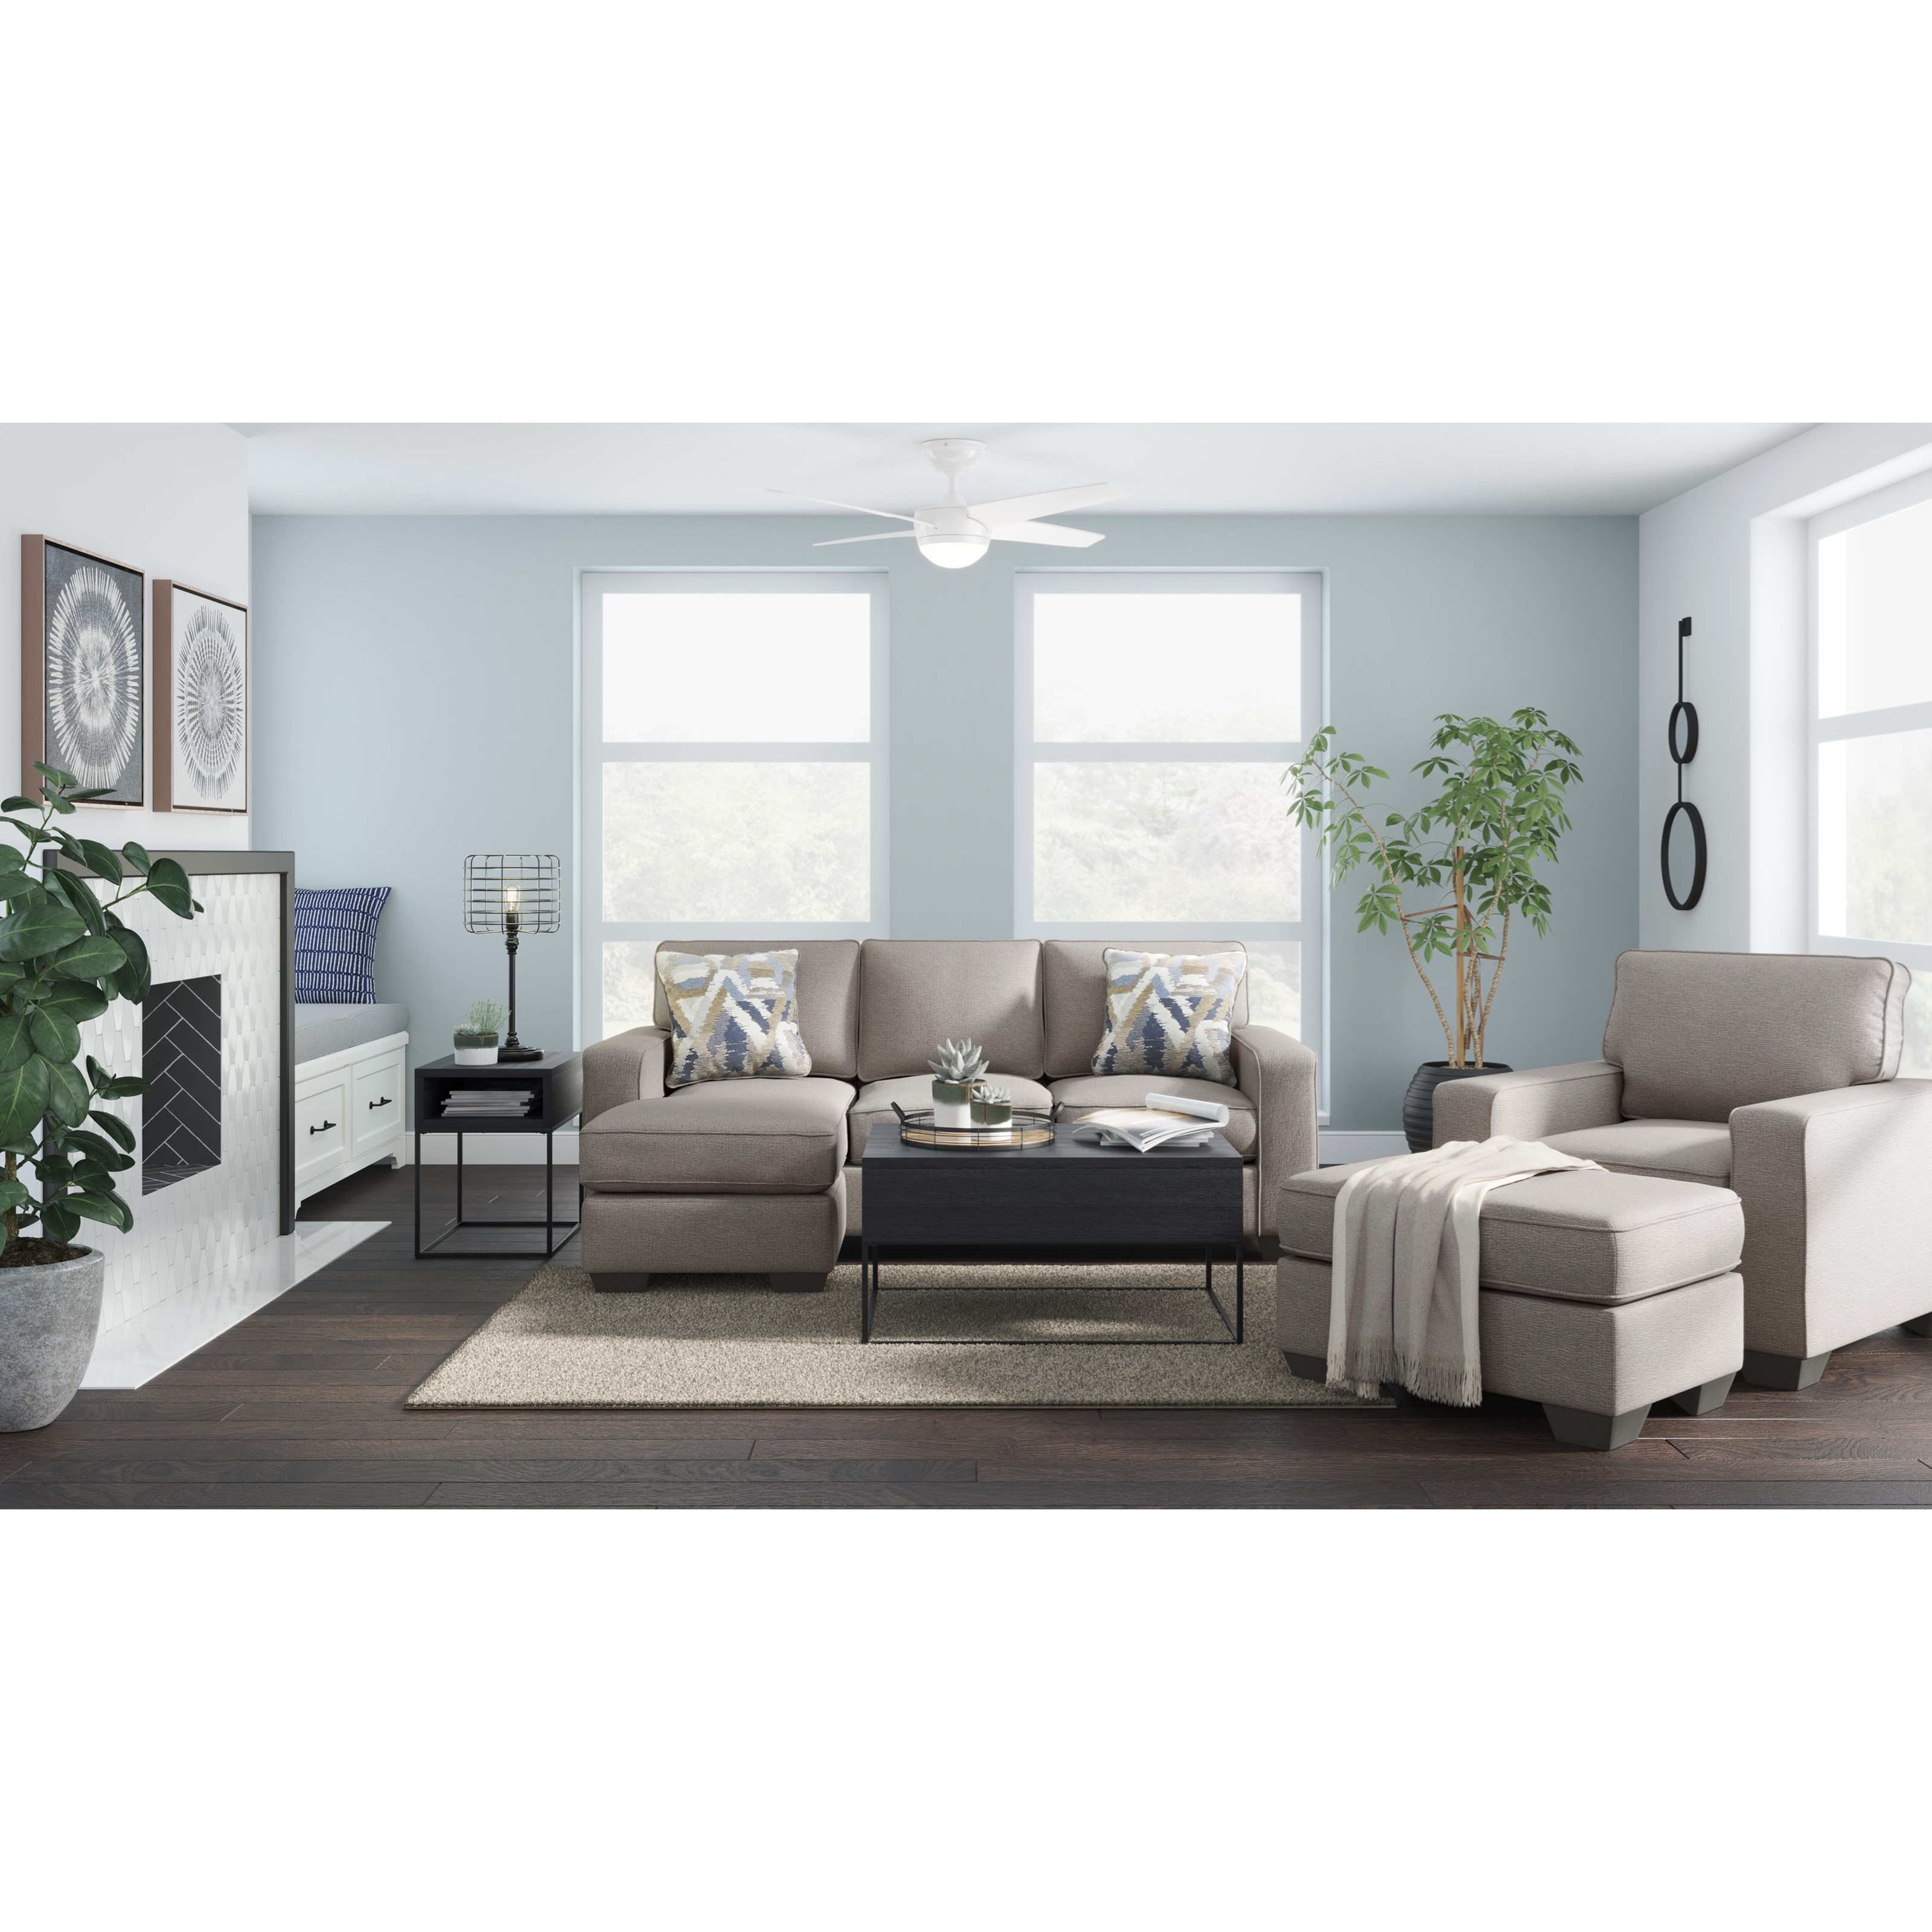 Greaves Living Room Group by Signature Design by Ashley at Northeast Factory Direct